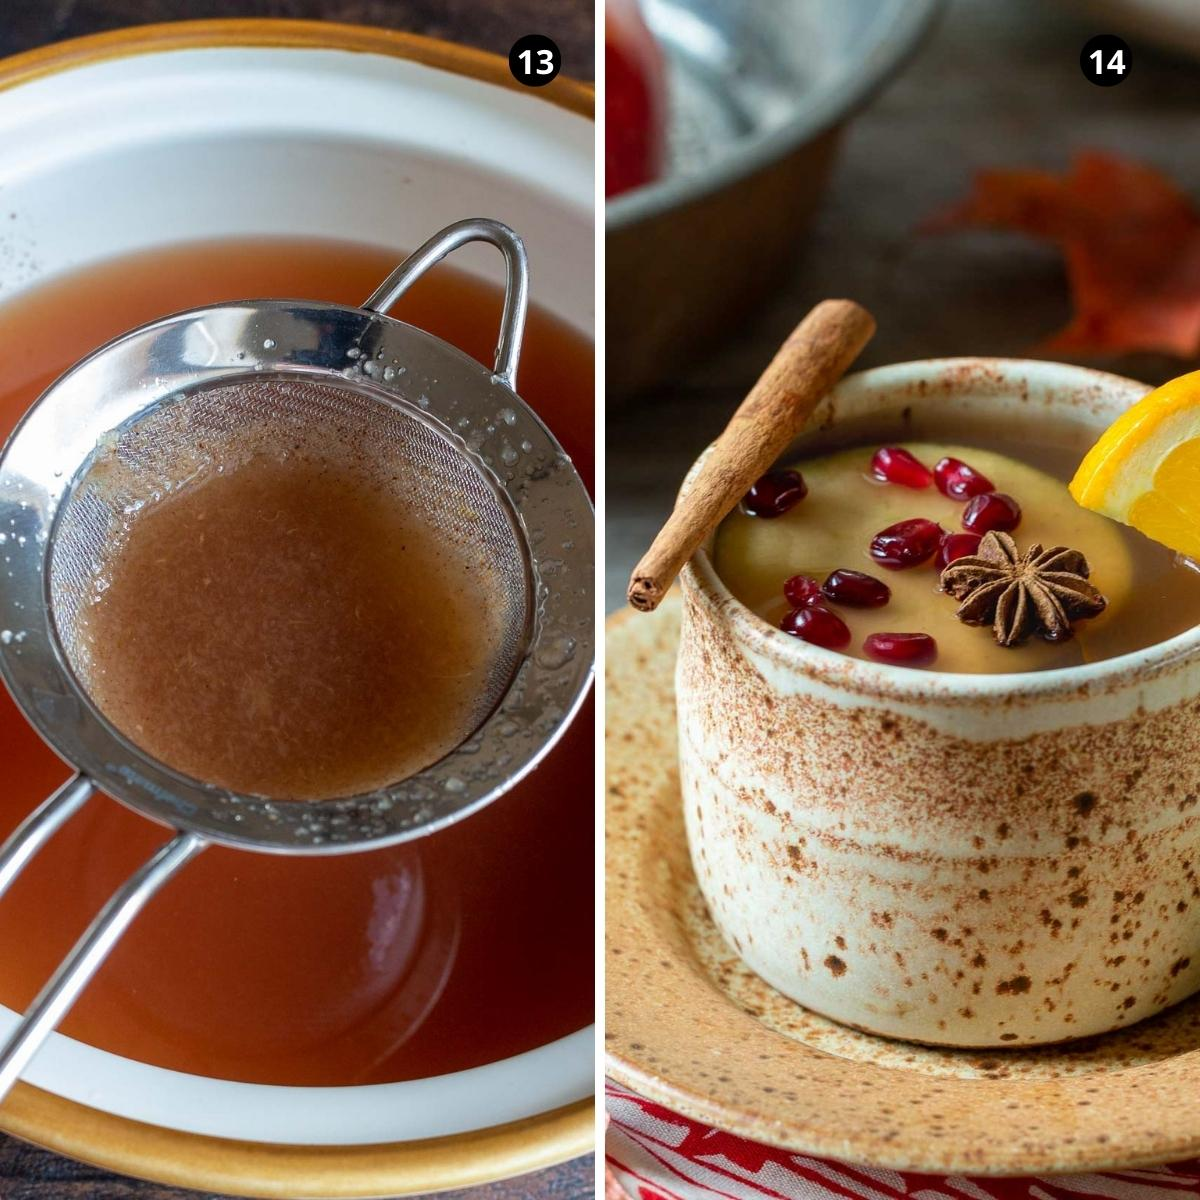 Straining homemade apple cider and garnished with cinnamon sticks and fresh apples.